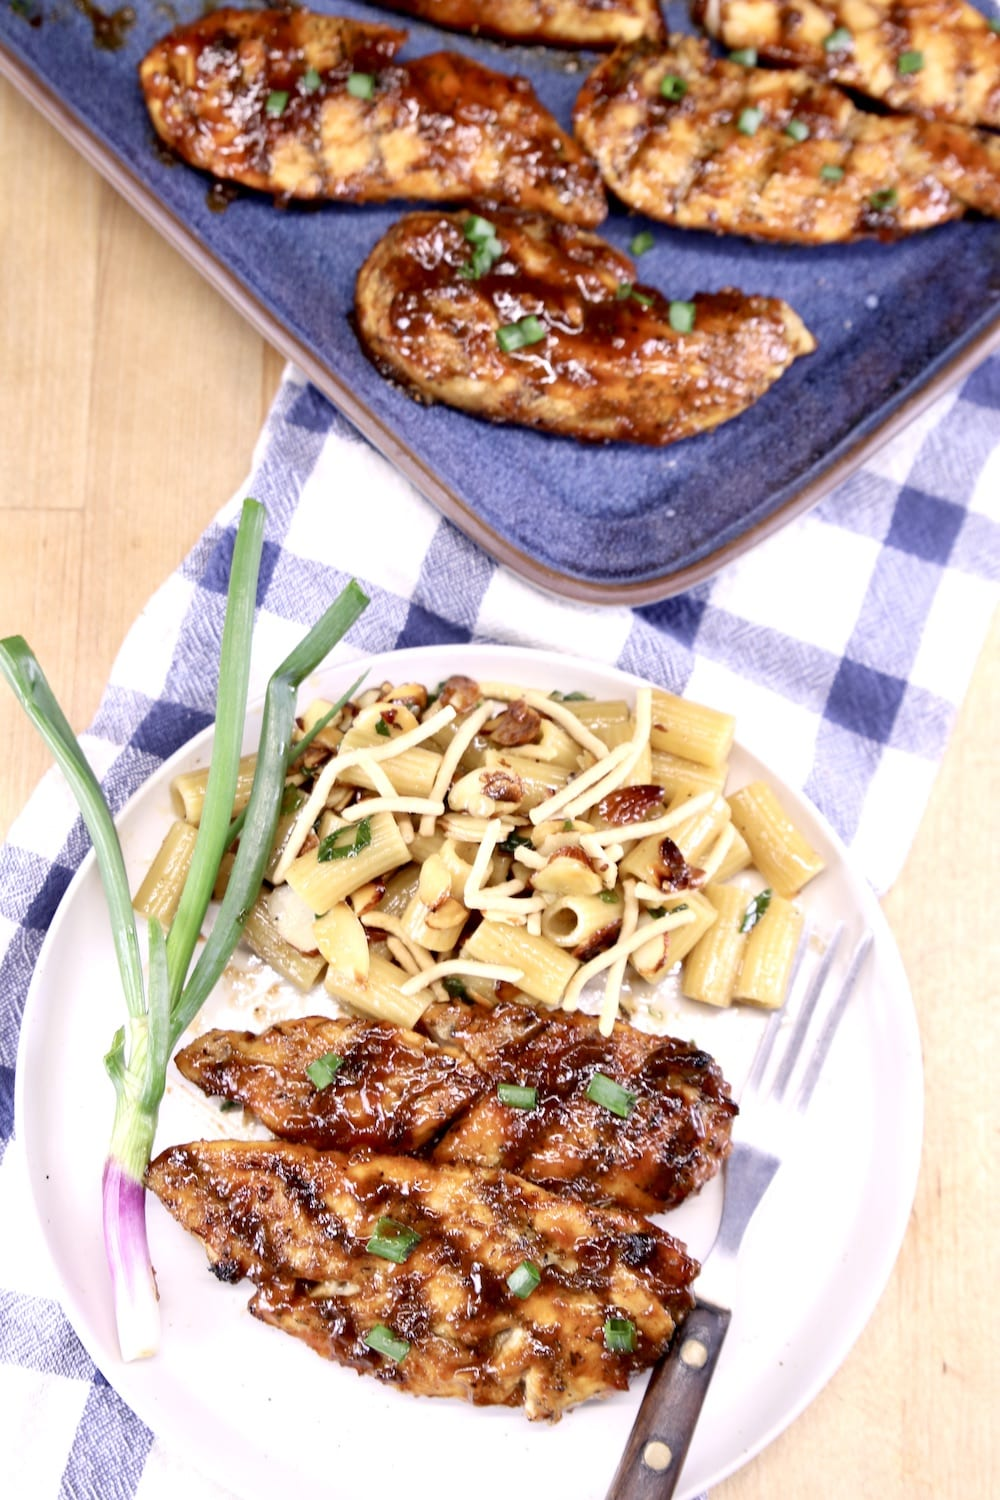 Grilled Chicken Tenders on a plate with pasta and a green onion